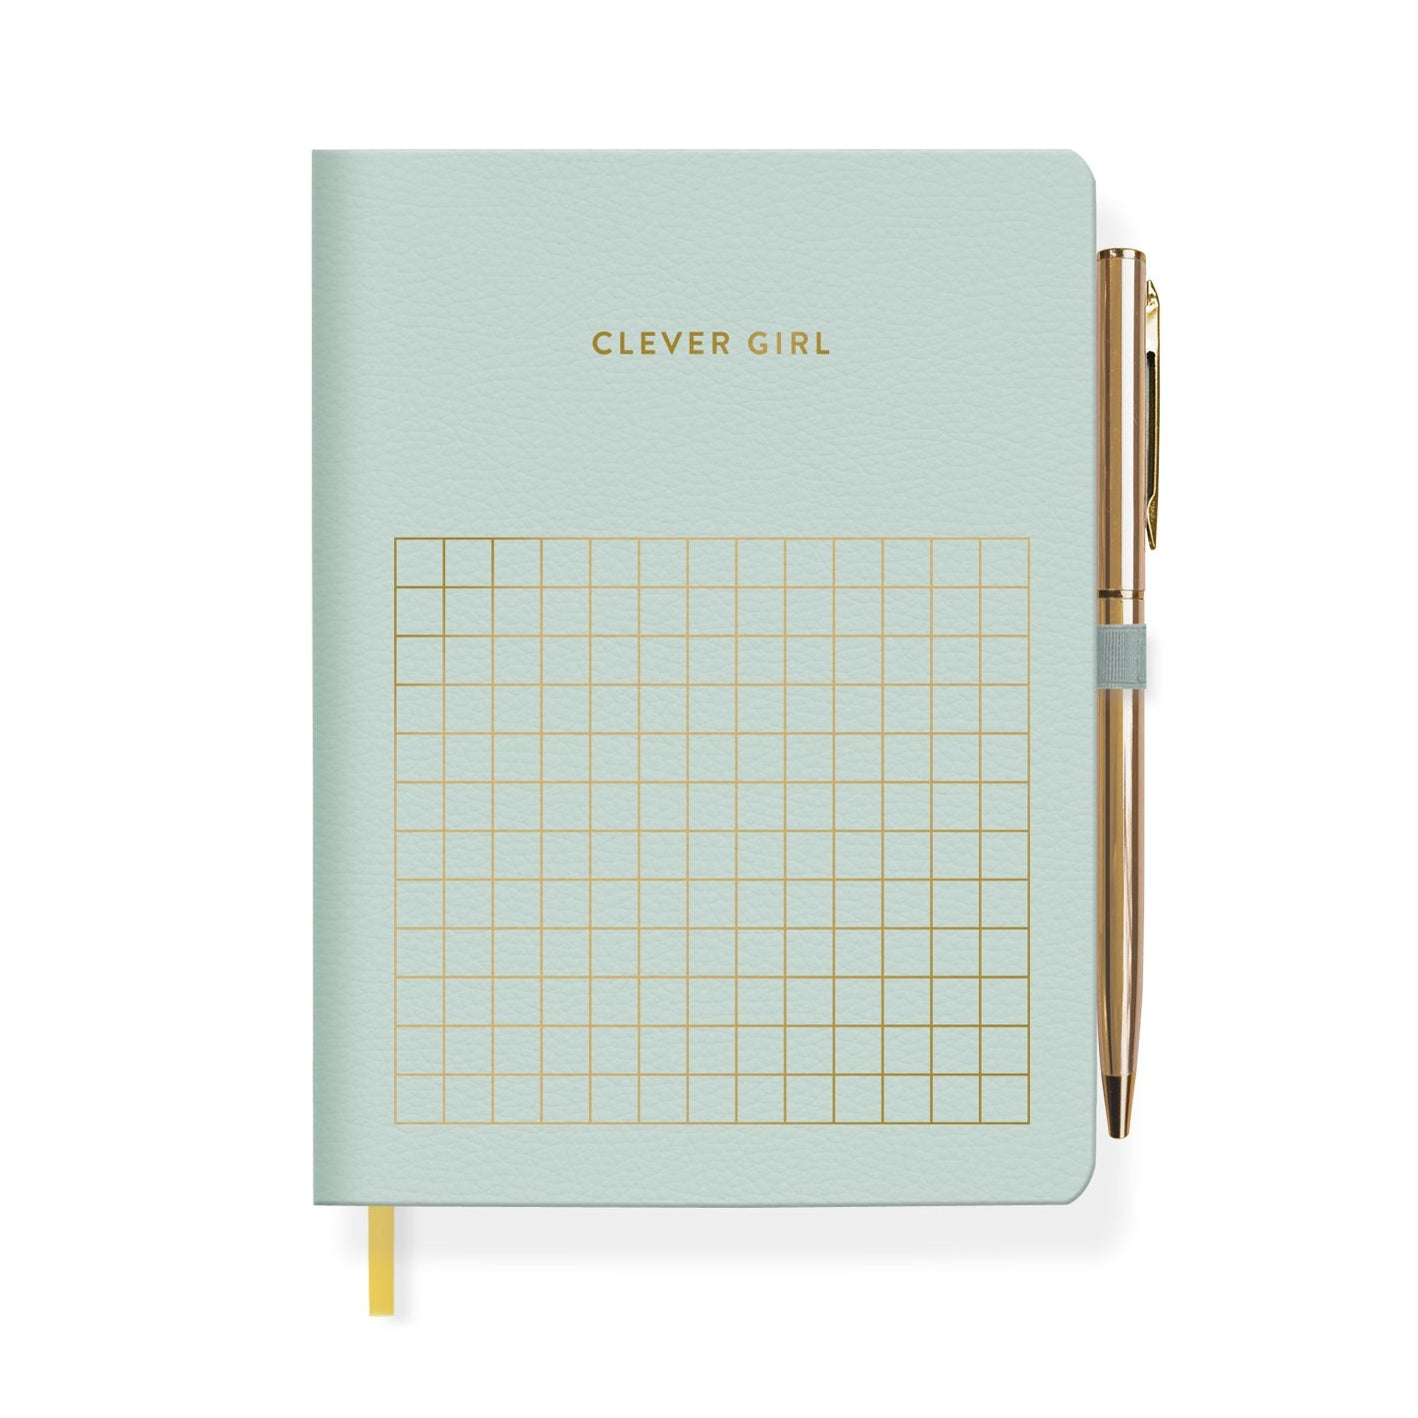 CLEVER GIRL JOURNAL WITH SLIM PEN